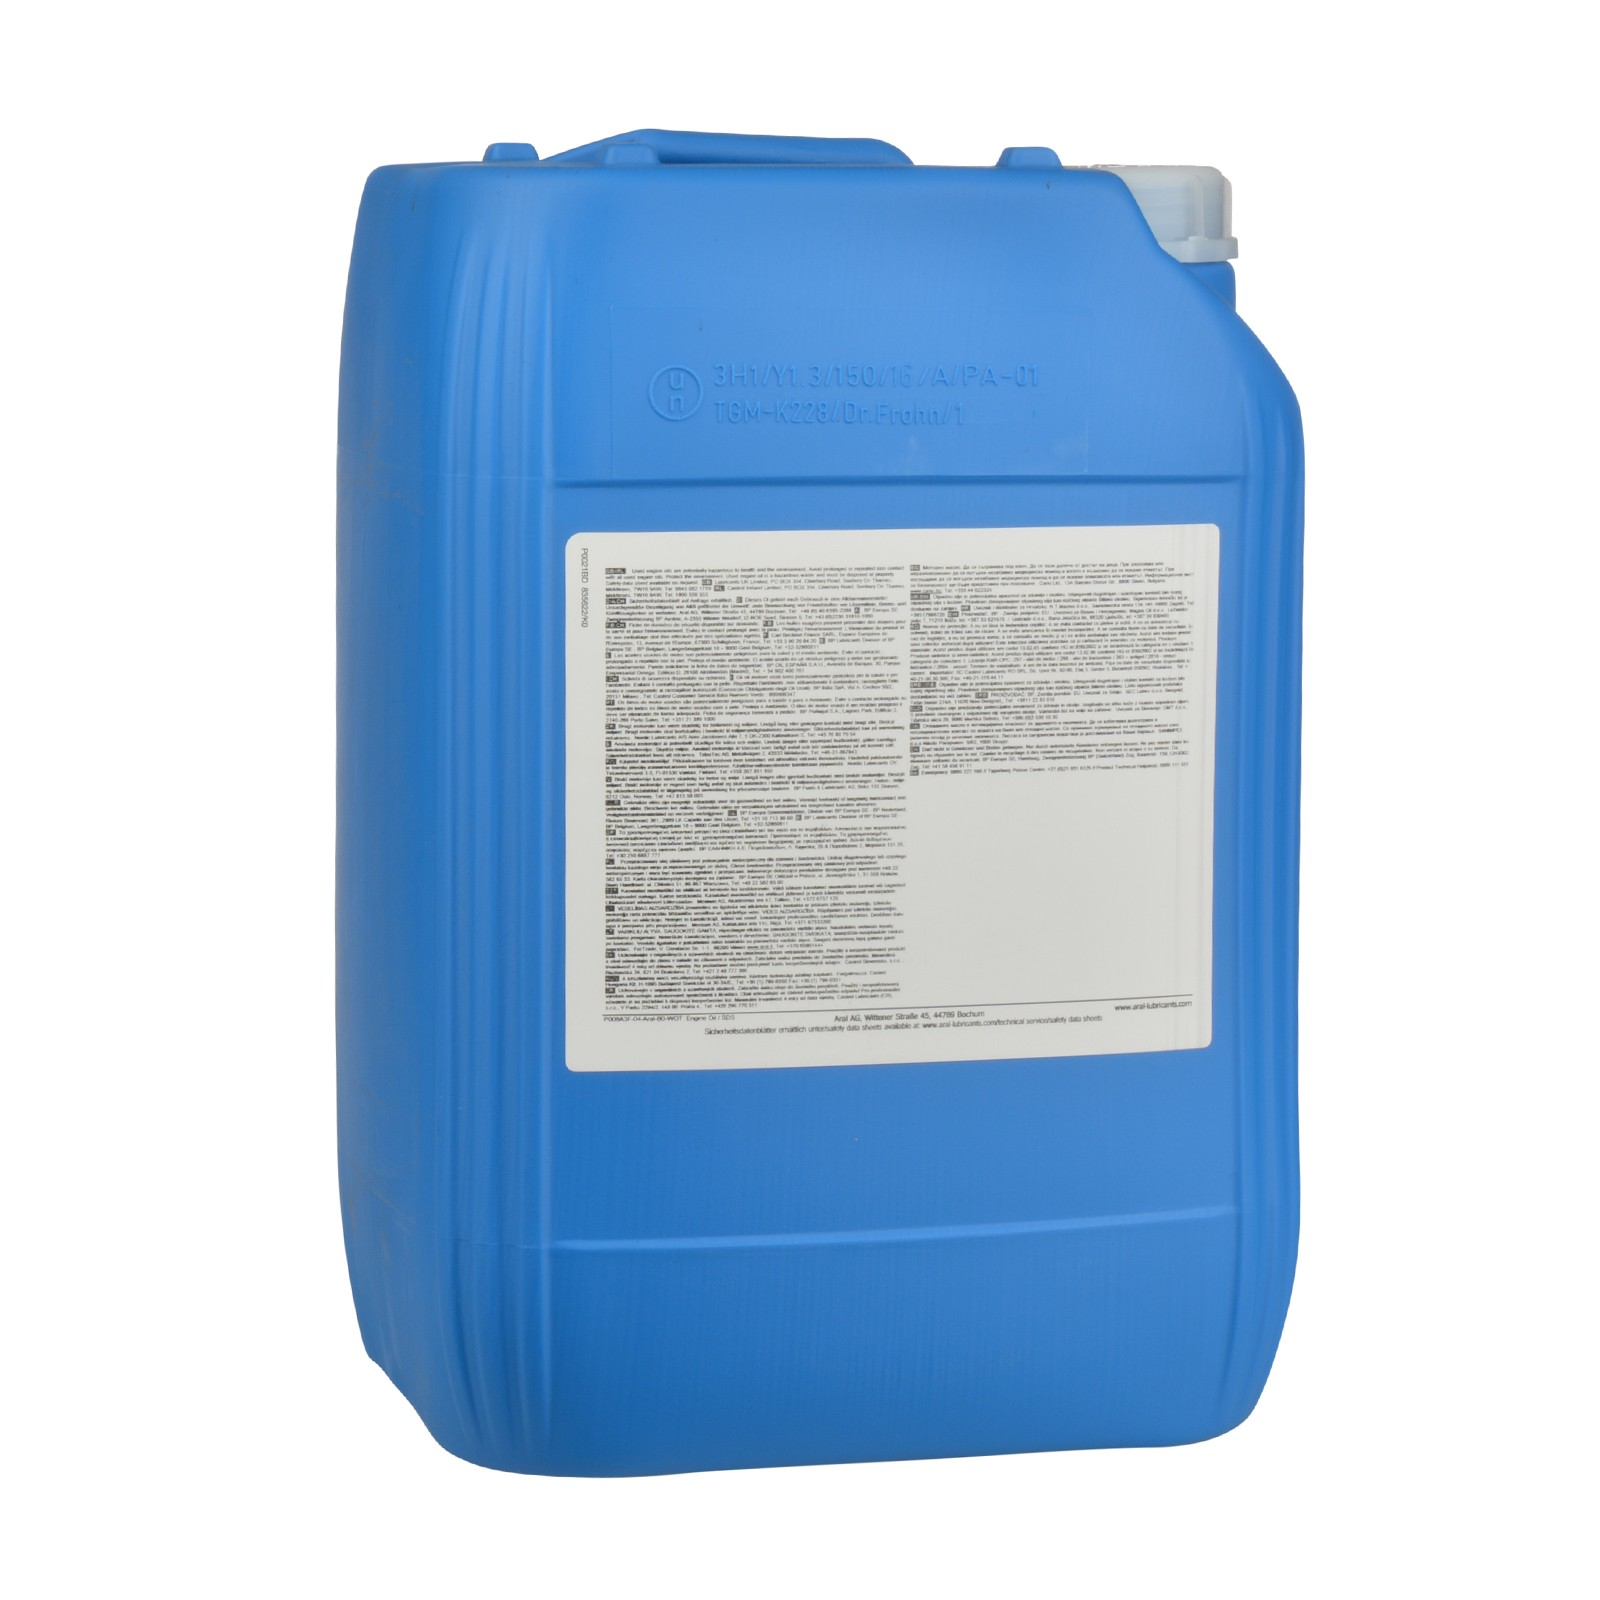 Aral SuperTronic 0W 40 20 Liter